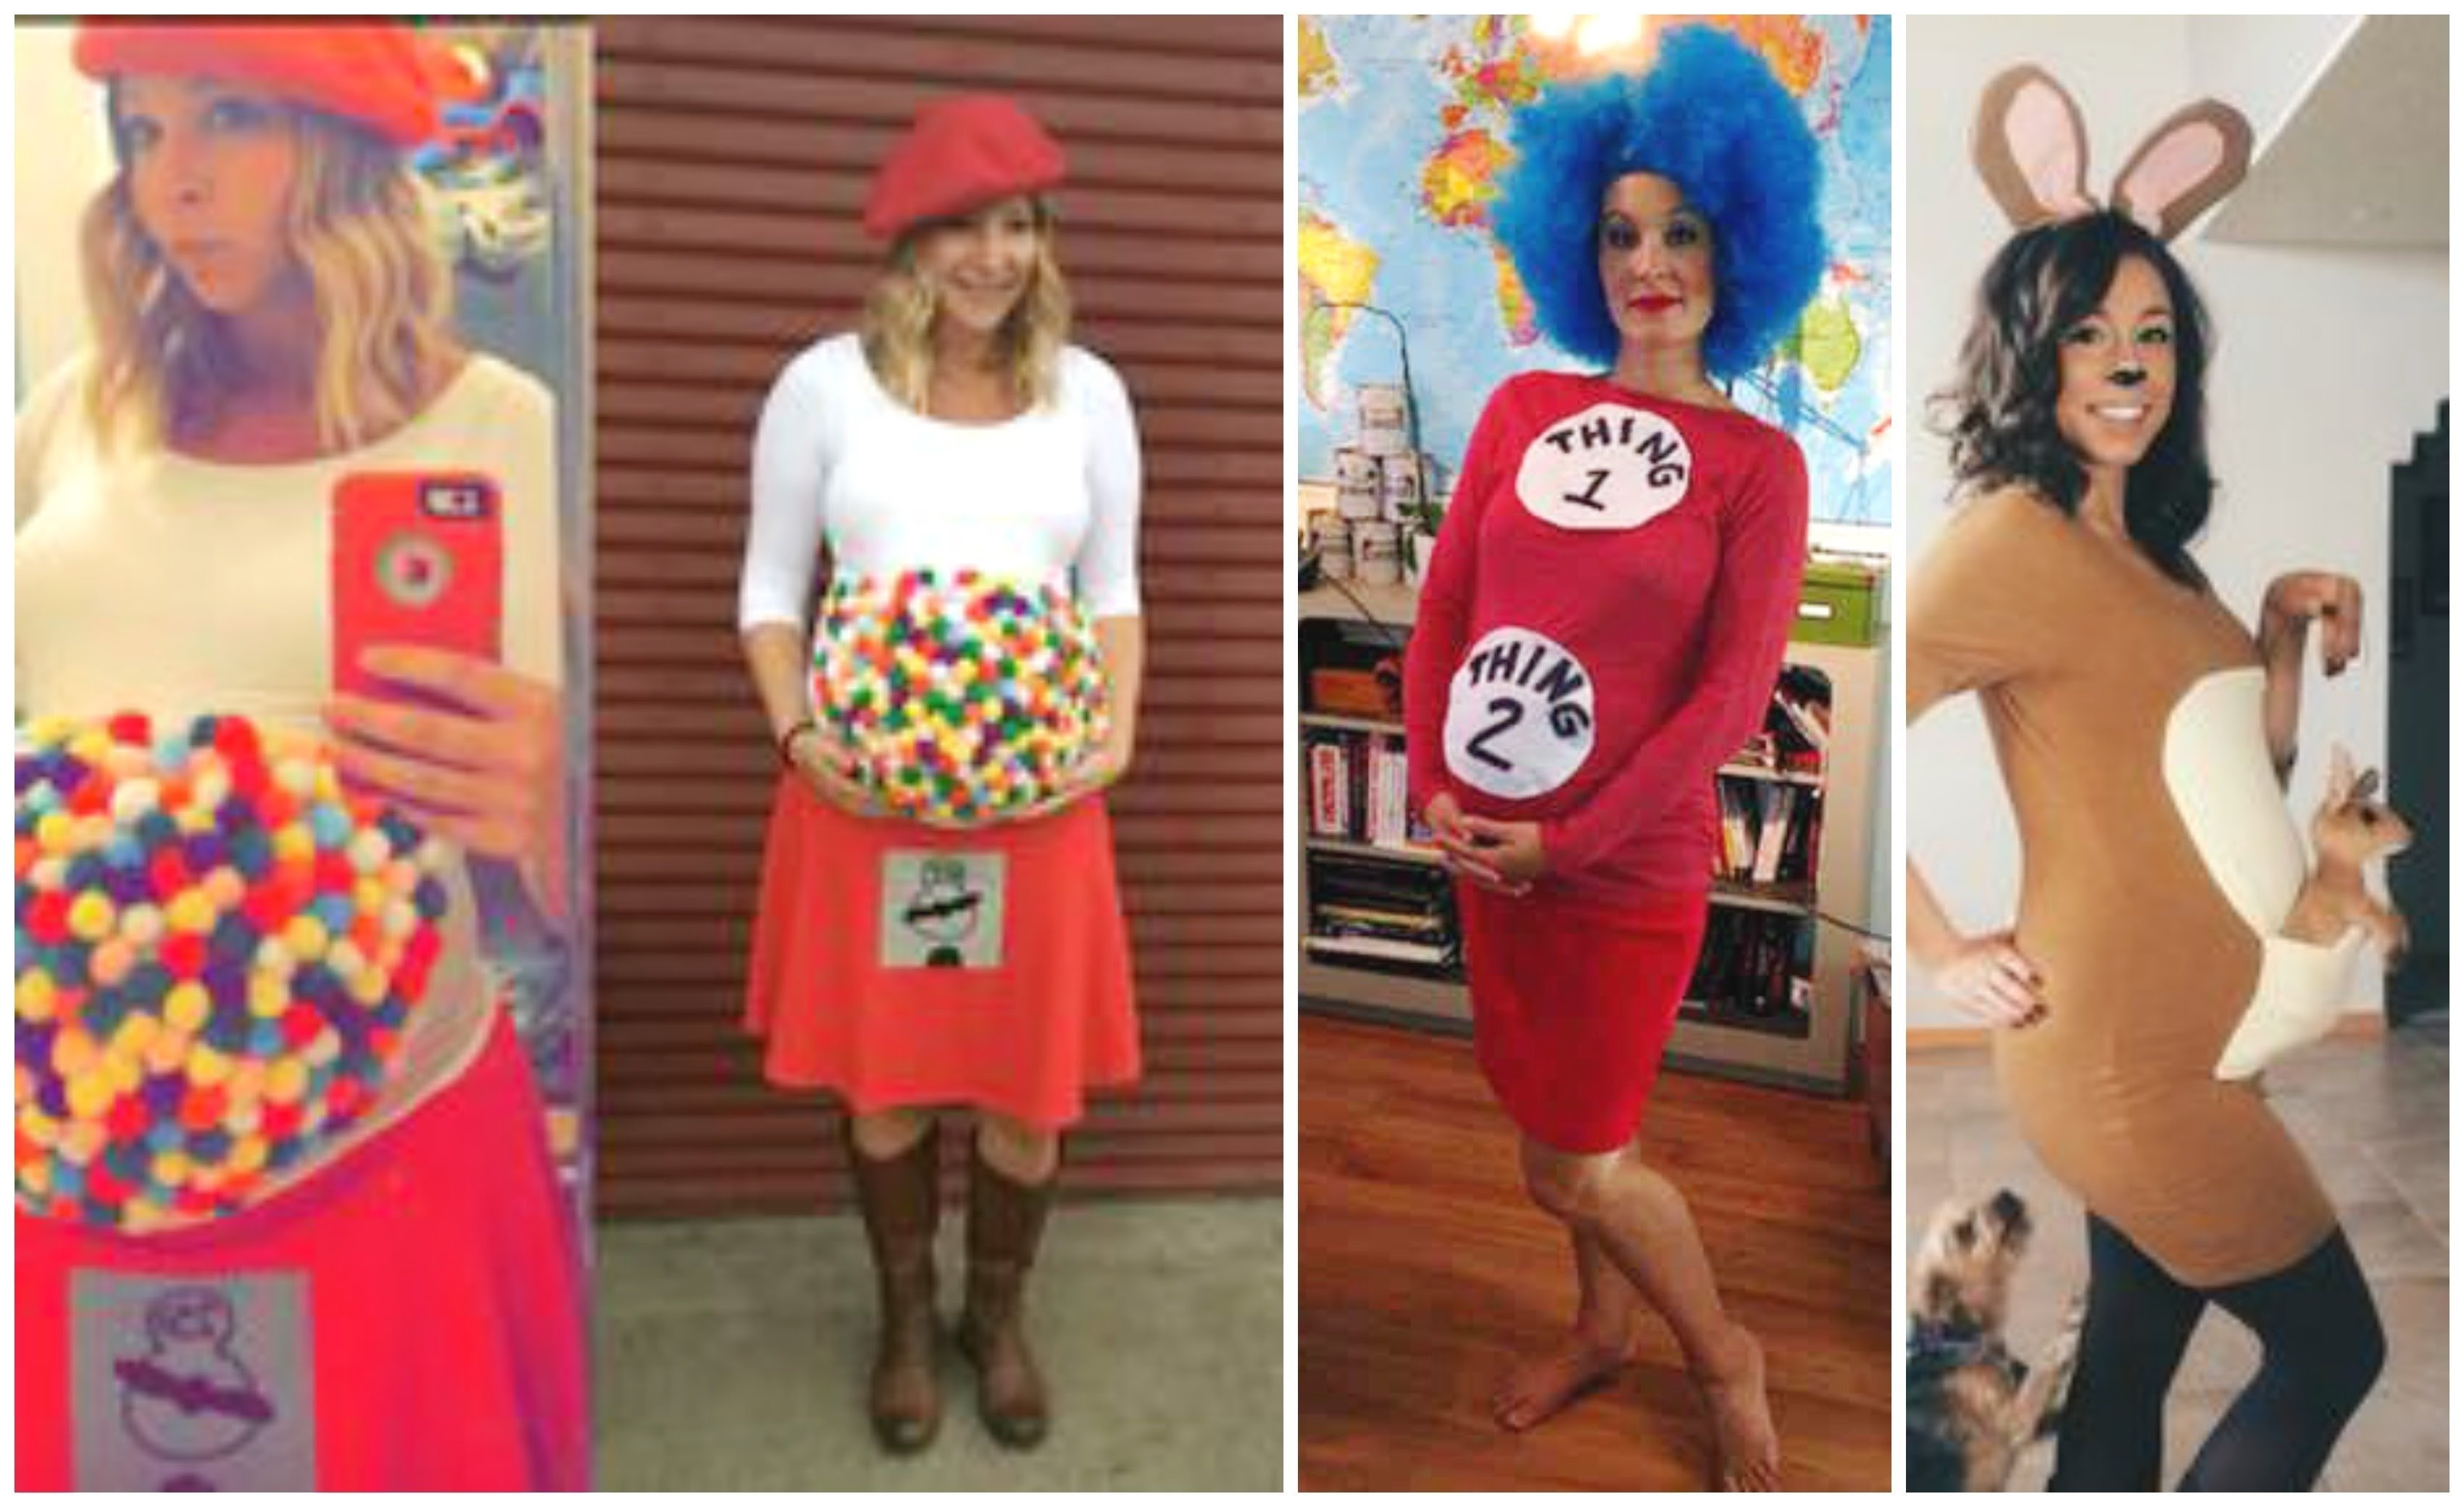 10 Awesome Creative Halloween Costume Ideas Women creative maternity halloween costume ideas costume ideas for 13 2020